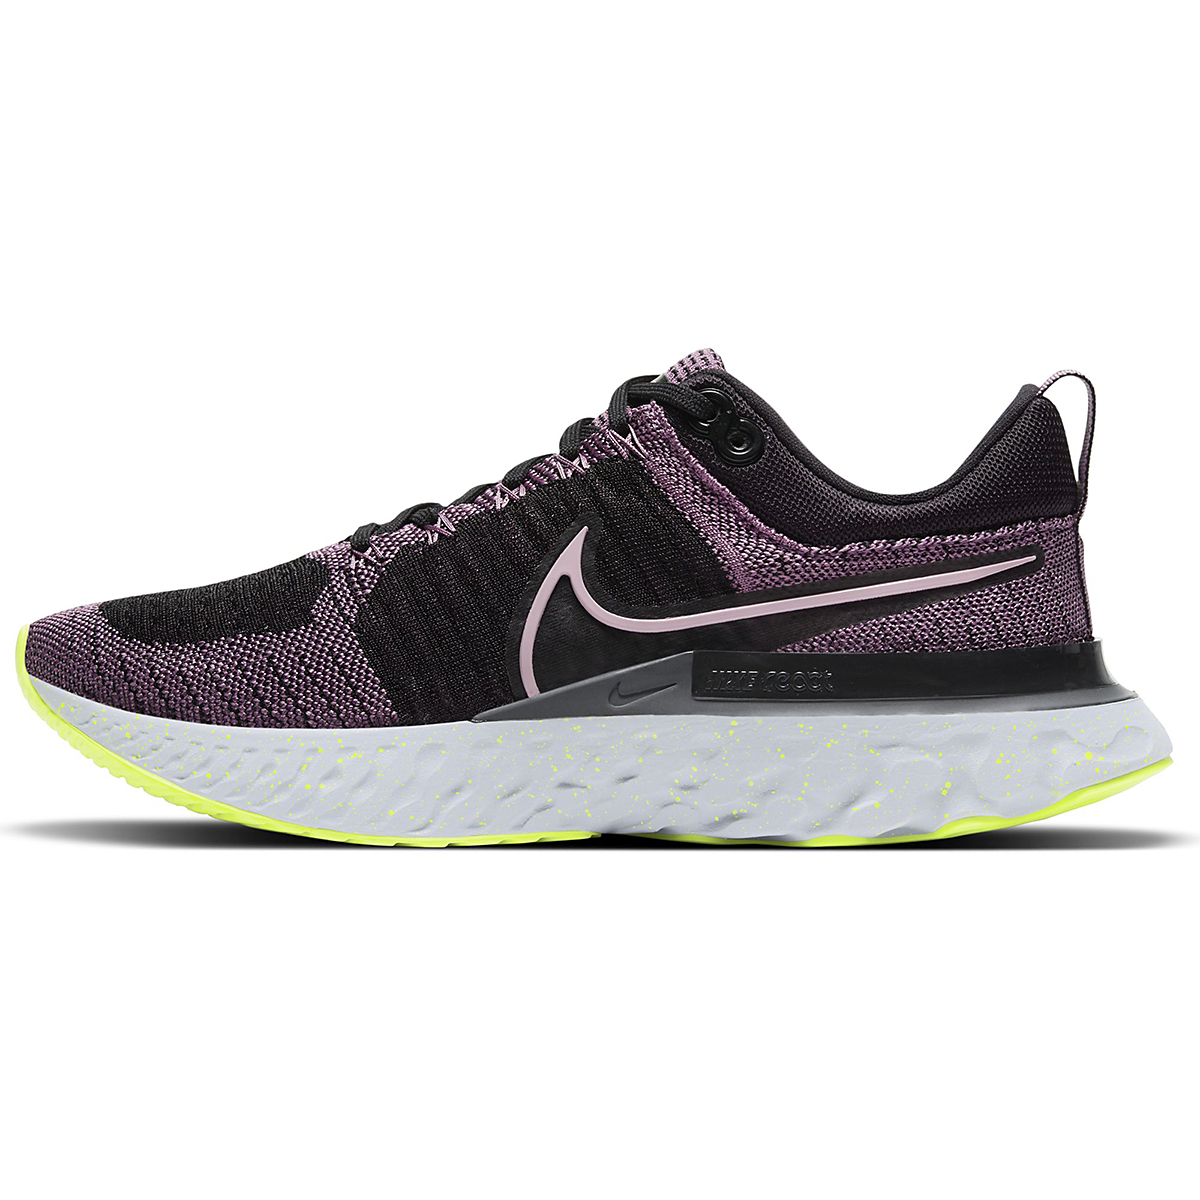 Women's Nike React Infinity Run Flyknit 2 Running Shoe - Color: Violet Dust/Elemental Pink/Black/Cyber - Size: 5.5 - Width: Regular, Violet Dust/Elemental Pink/Black/Cyber, large, image 2